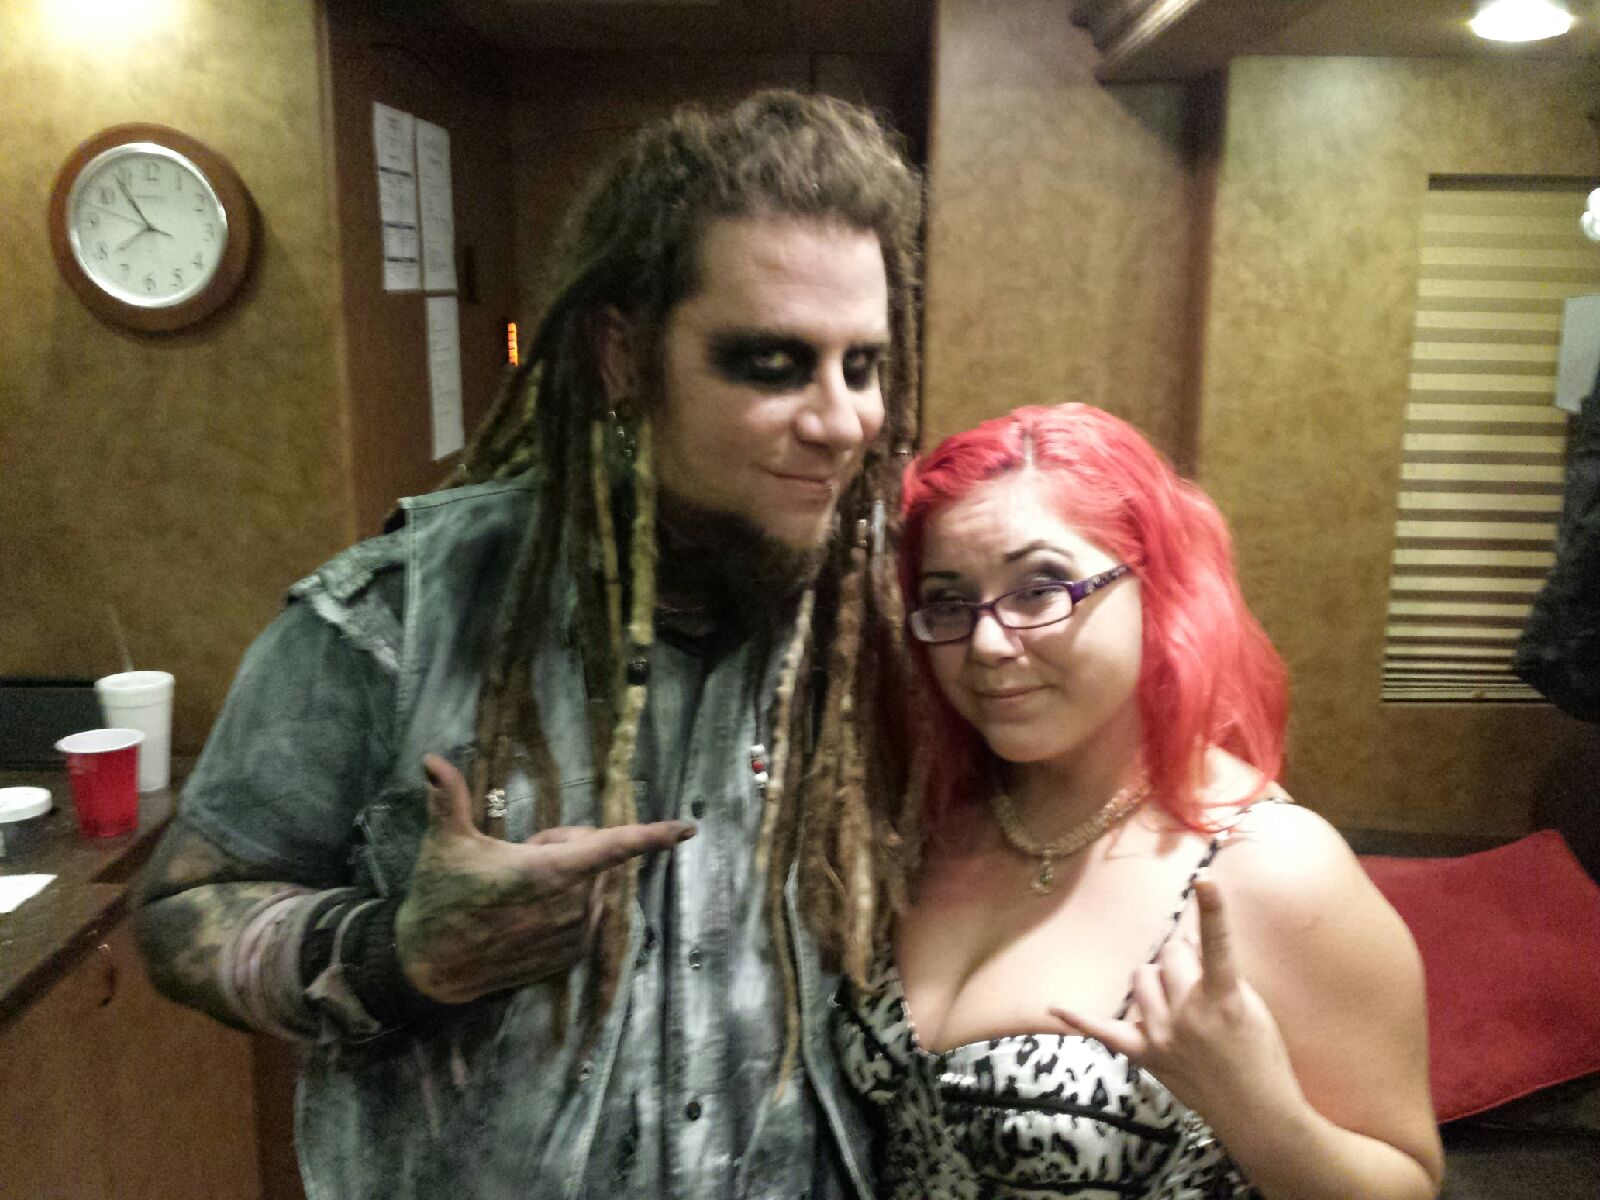 Mercedes with Chris from In This Moment 9/1/14